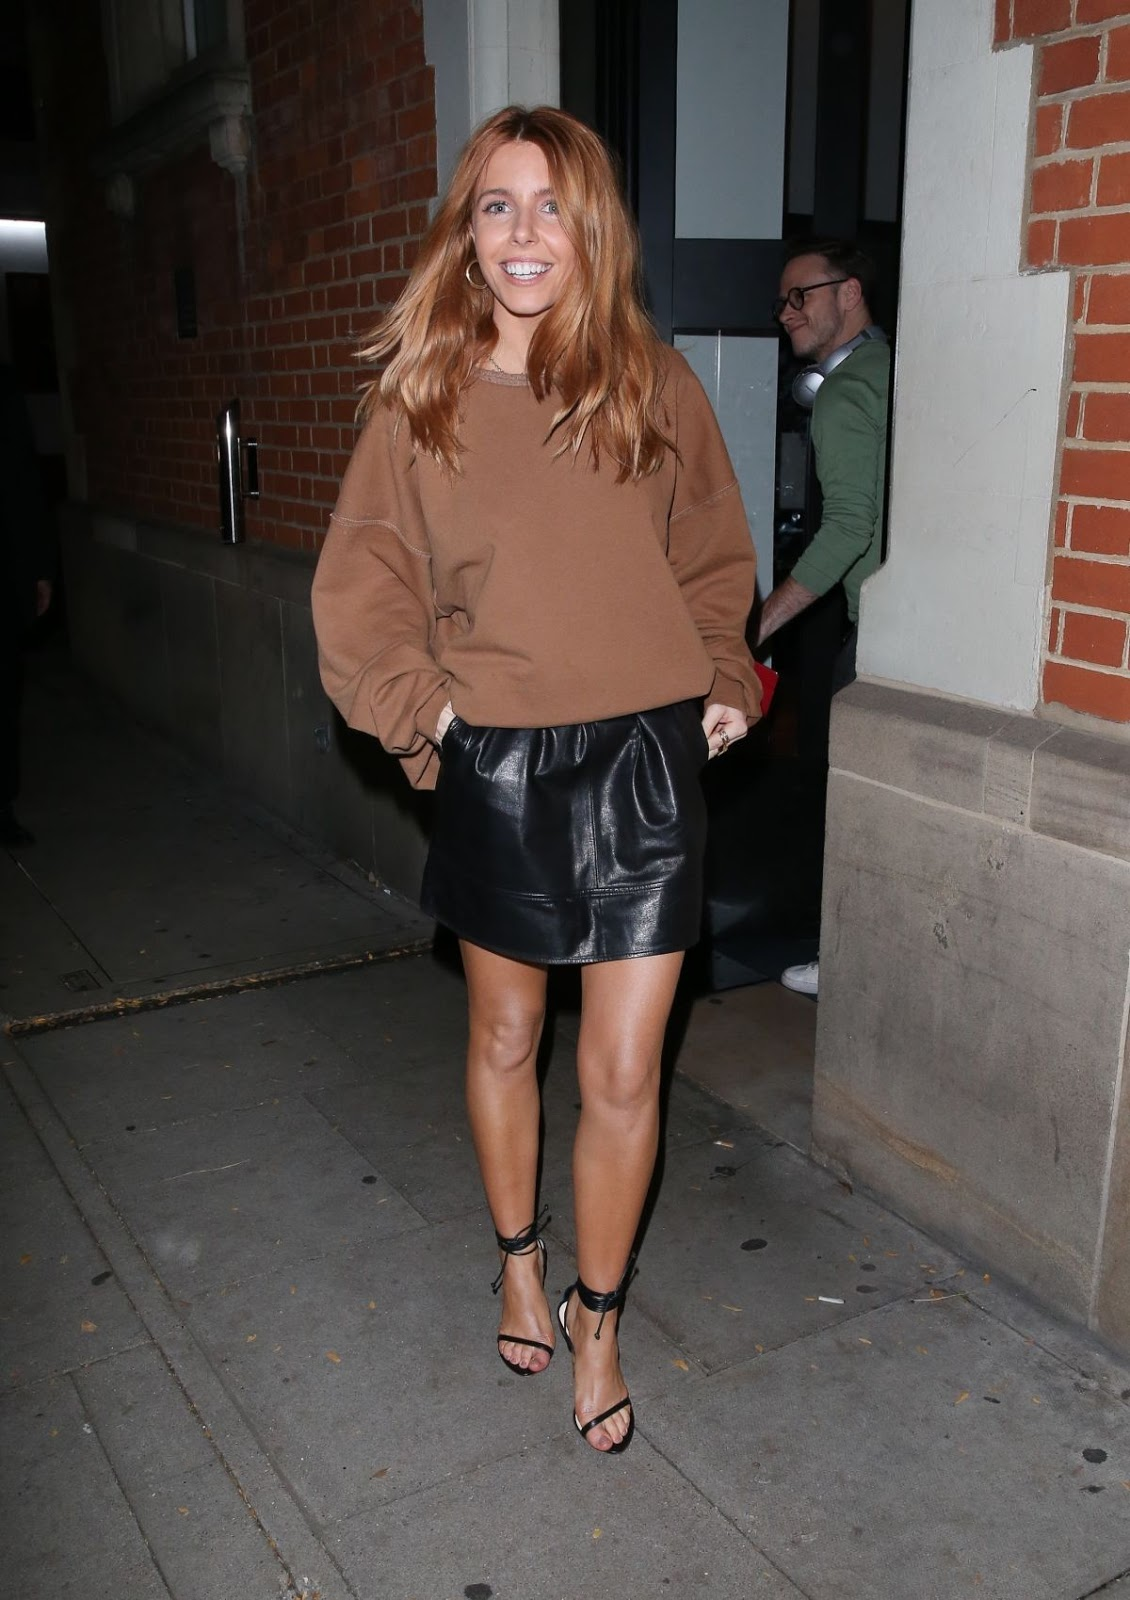 Stacey Dooley In Leather Mini-skirt In London